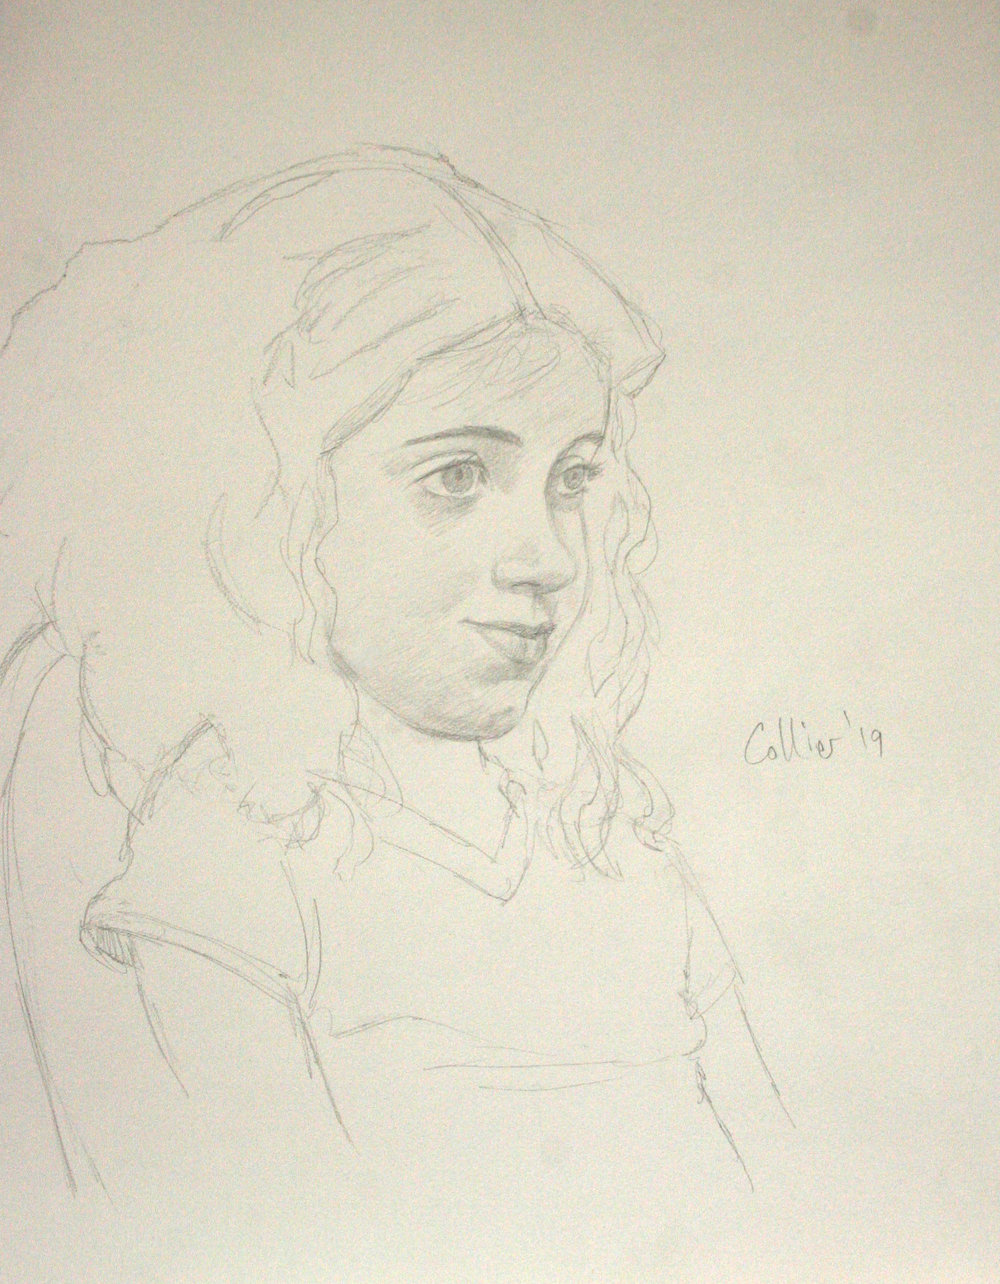 Howard Collier did this drawing of Winnie.